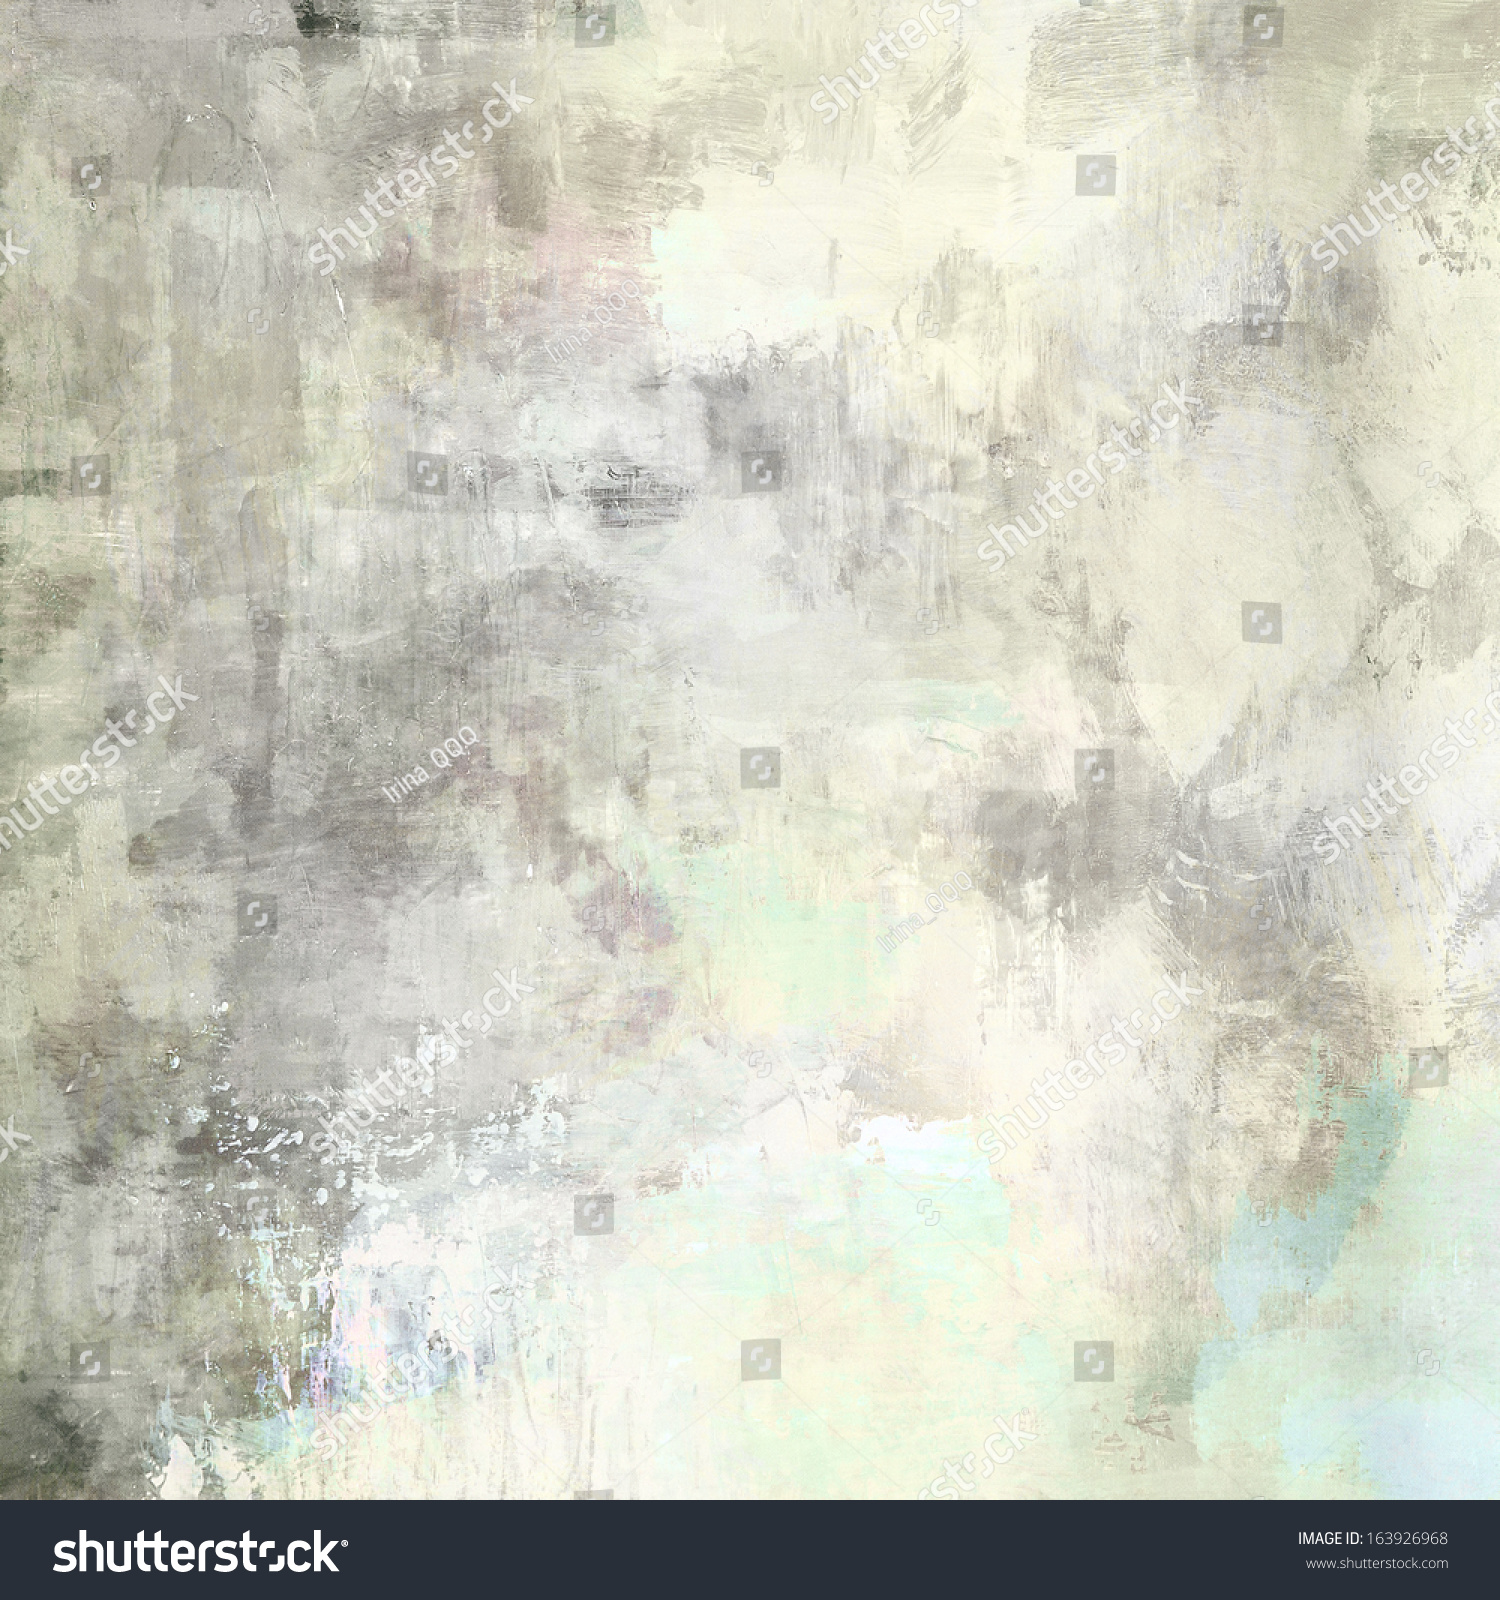 Image Result For Acrylic Painting Mottled Background